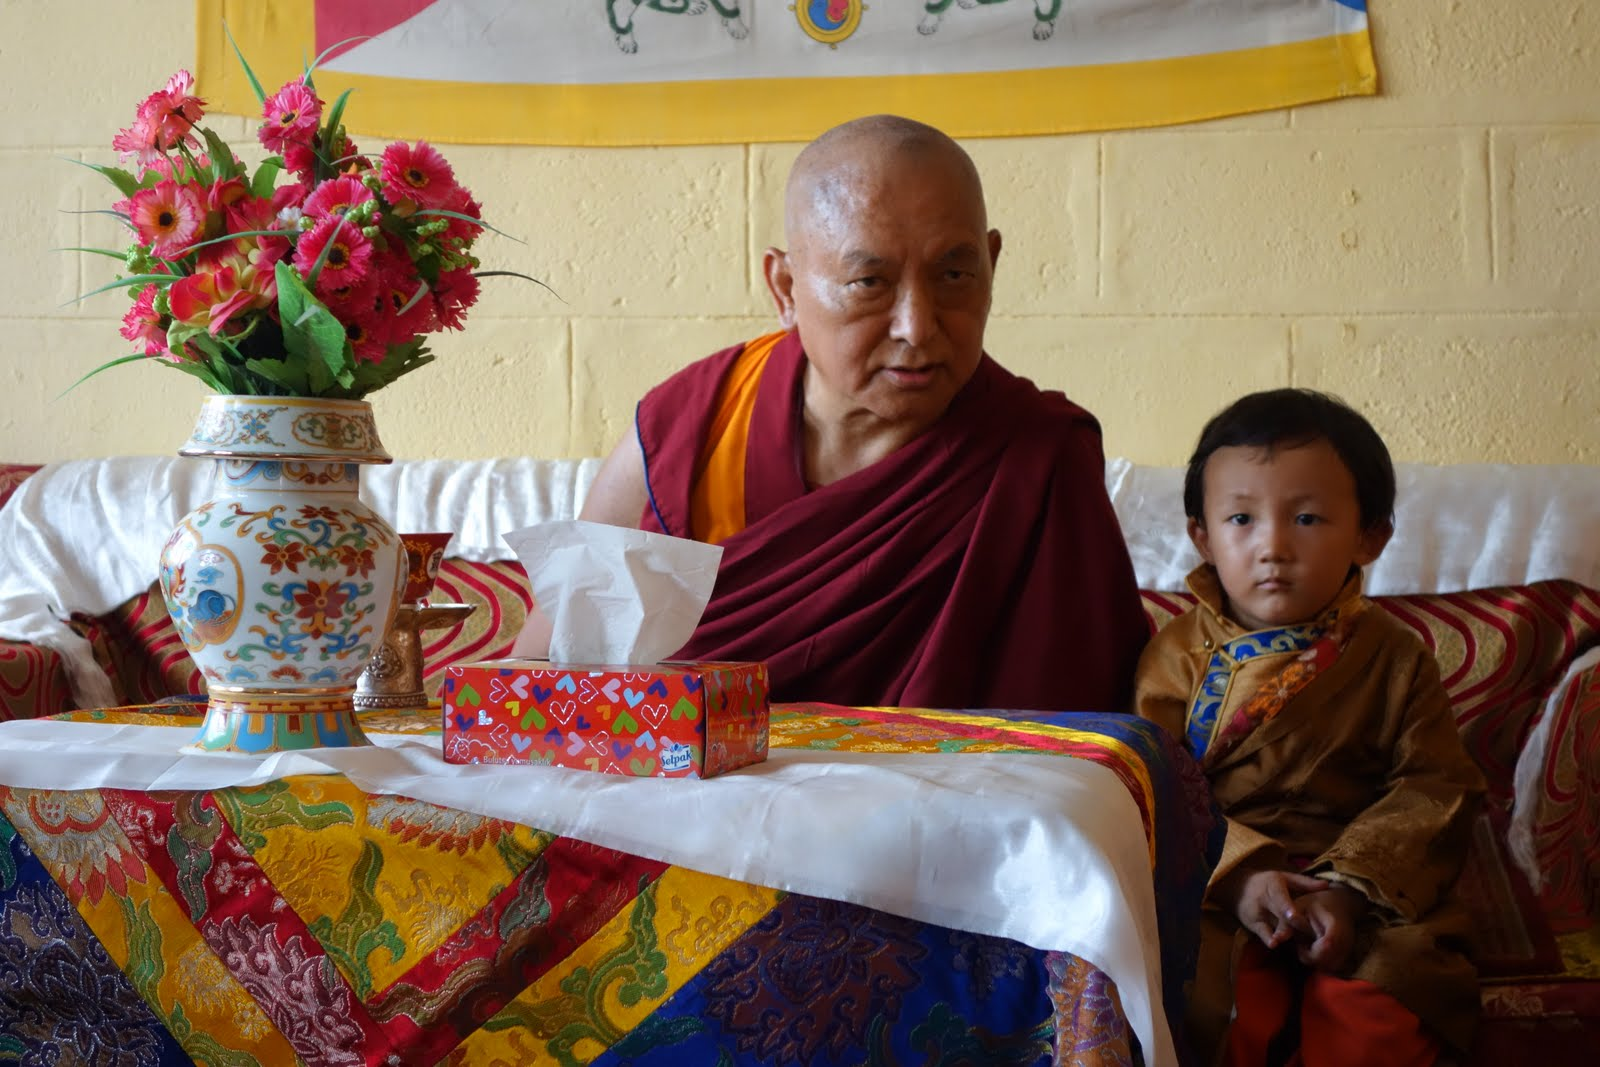 Rinpoche and a young lama at Kopan Nunnery. August 8, 2013 Photo: Ven.Roger Kunsang